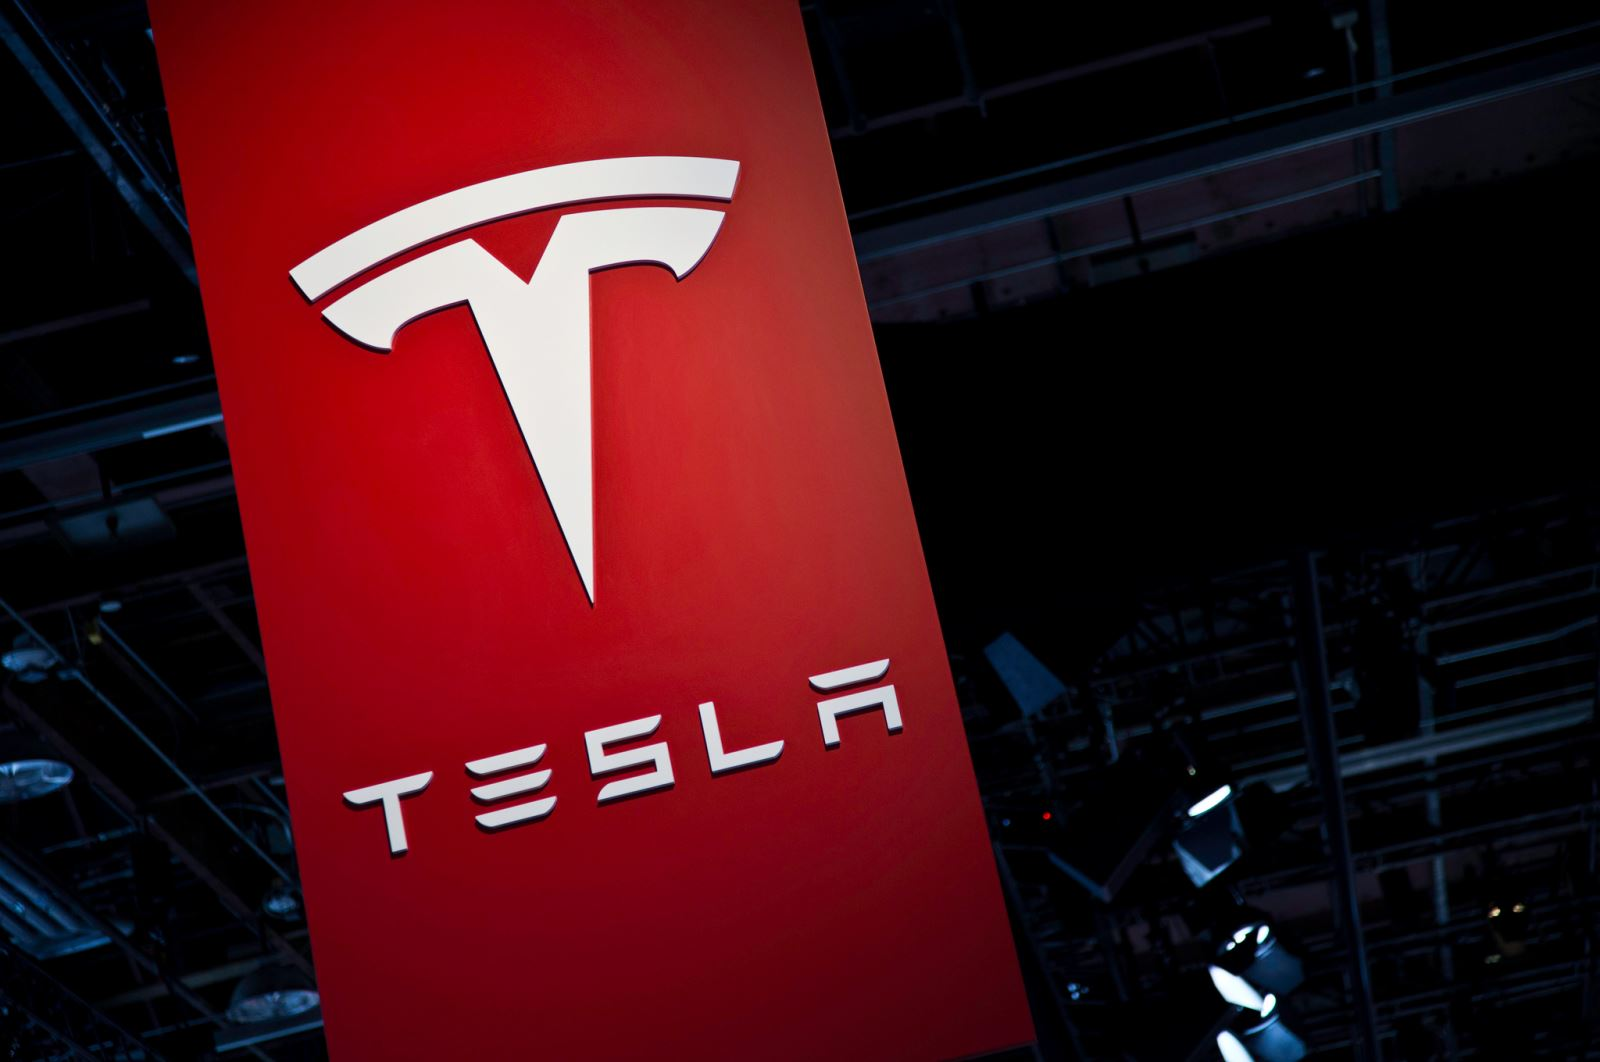 Tesla shares rise ahead of battery event